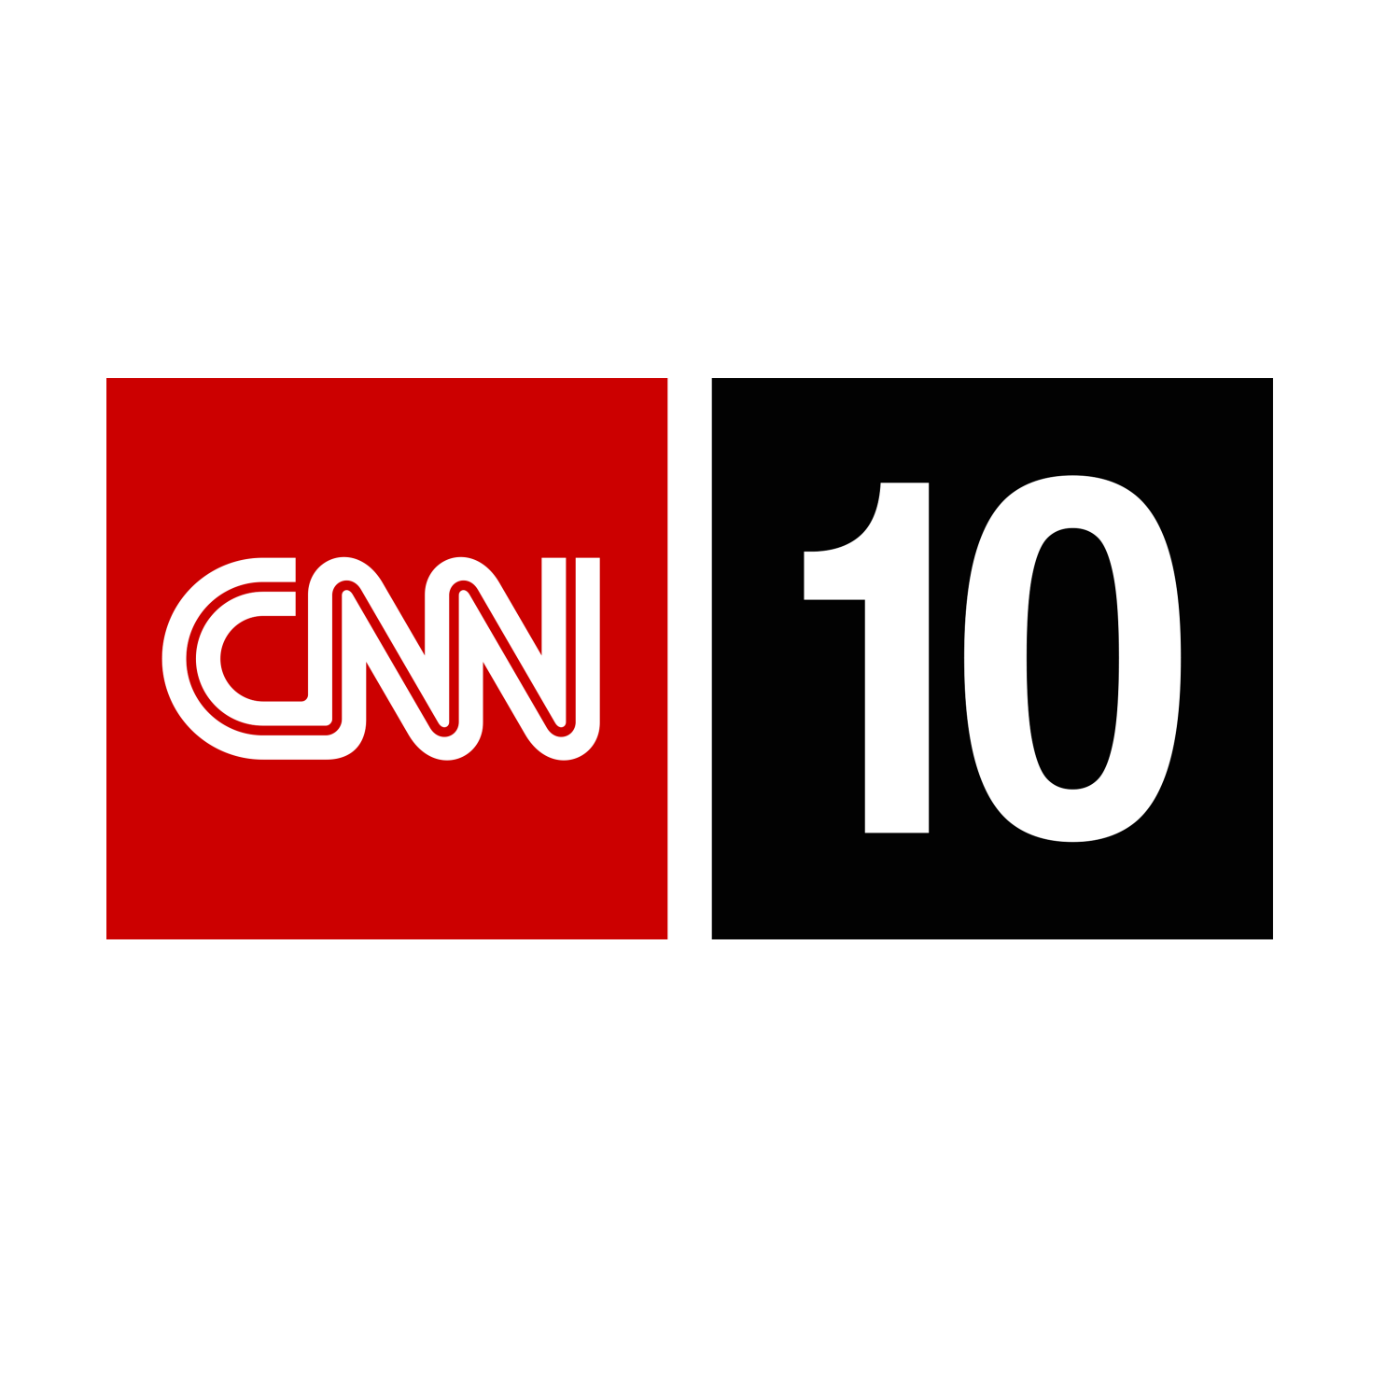 CNN Student News - October 5, 2012